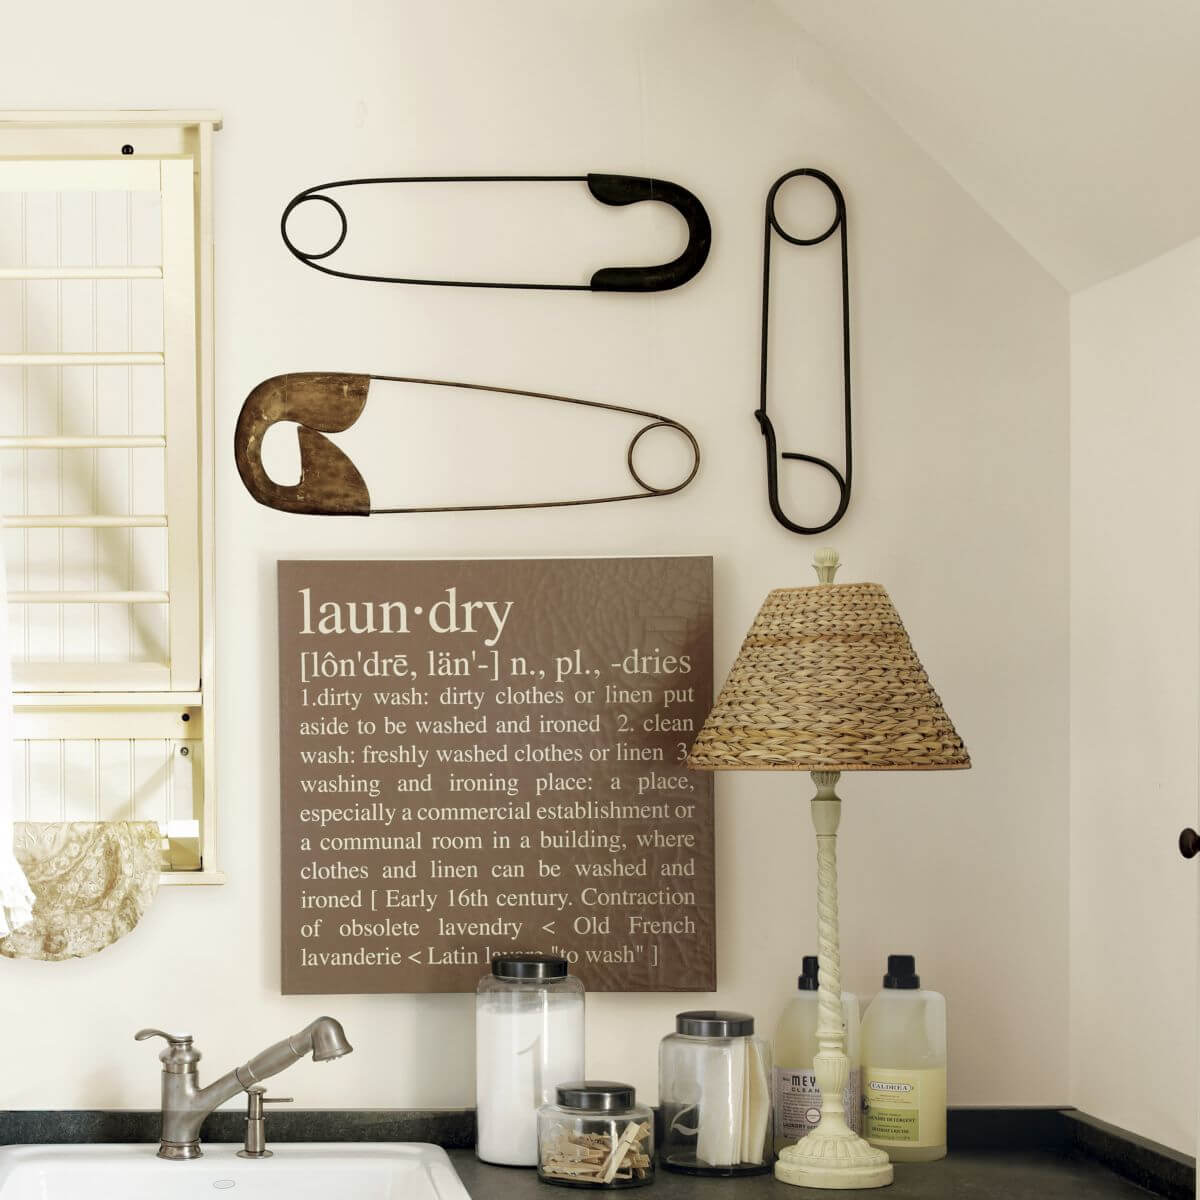 Laundry Dictionary Definition and Giant Pins Art